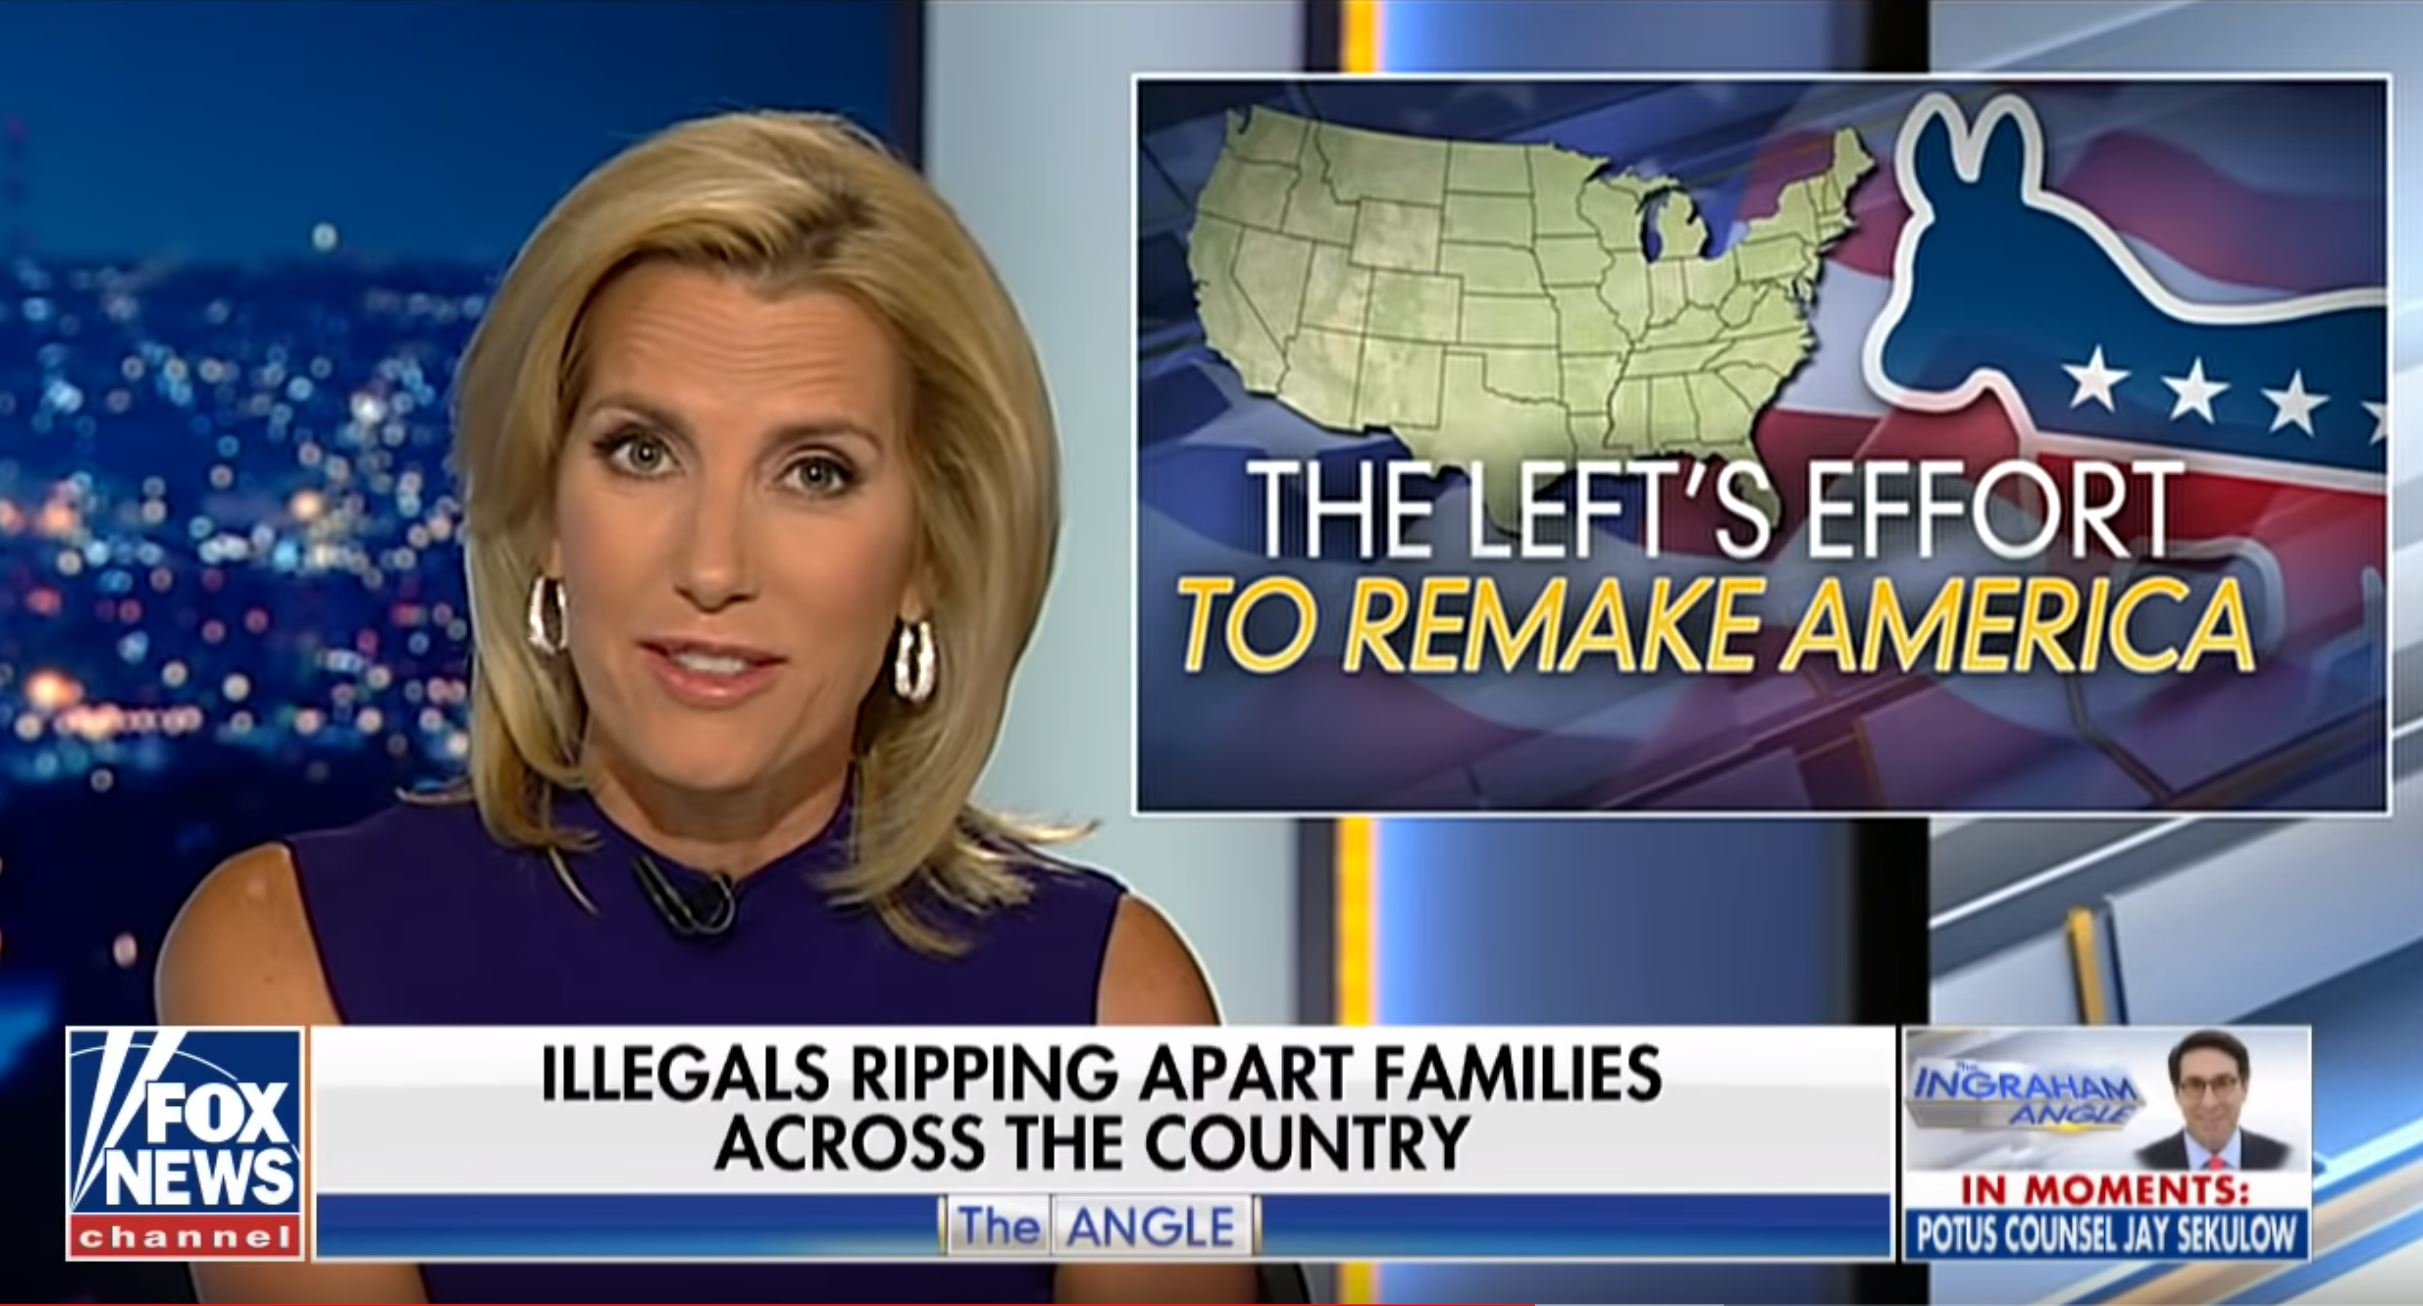 Fox News' Ingraham Disavows White Supremacists' Embrace Of Her 'Racist' Anti-Immigrant Tirade